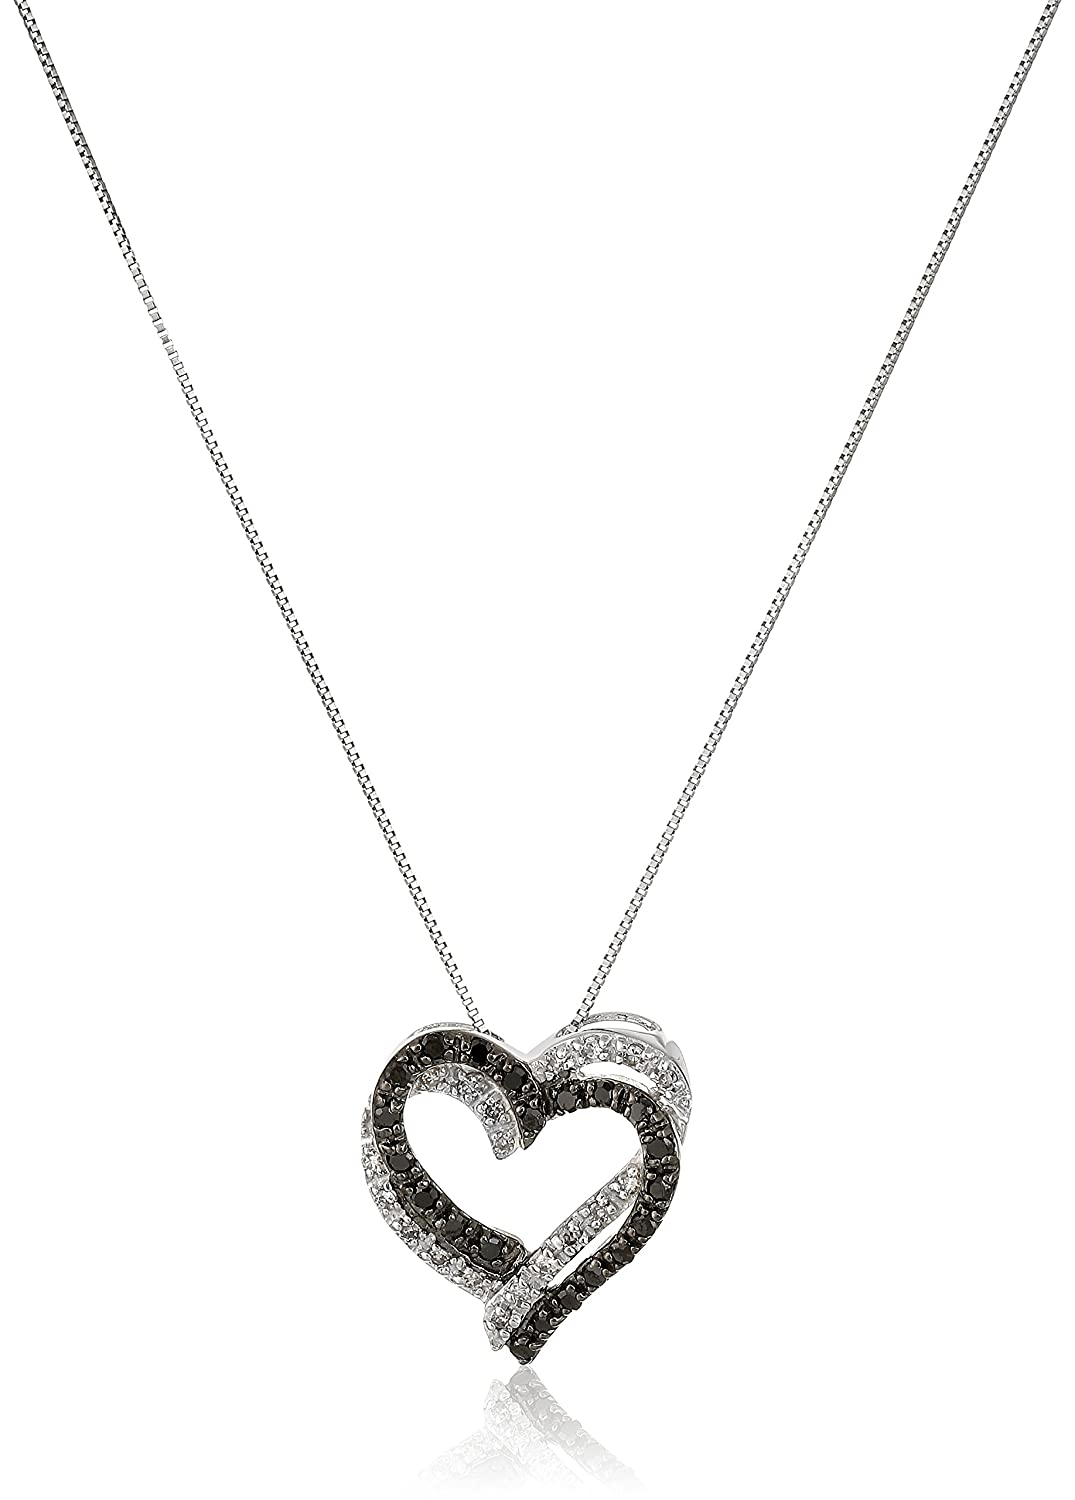 48a1fee422ec8 Amazon.com: 10k White Gold Black and White Diamond Double Heart ...